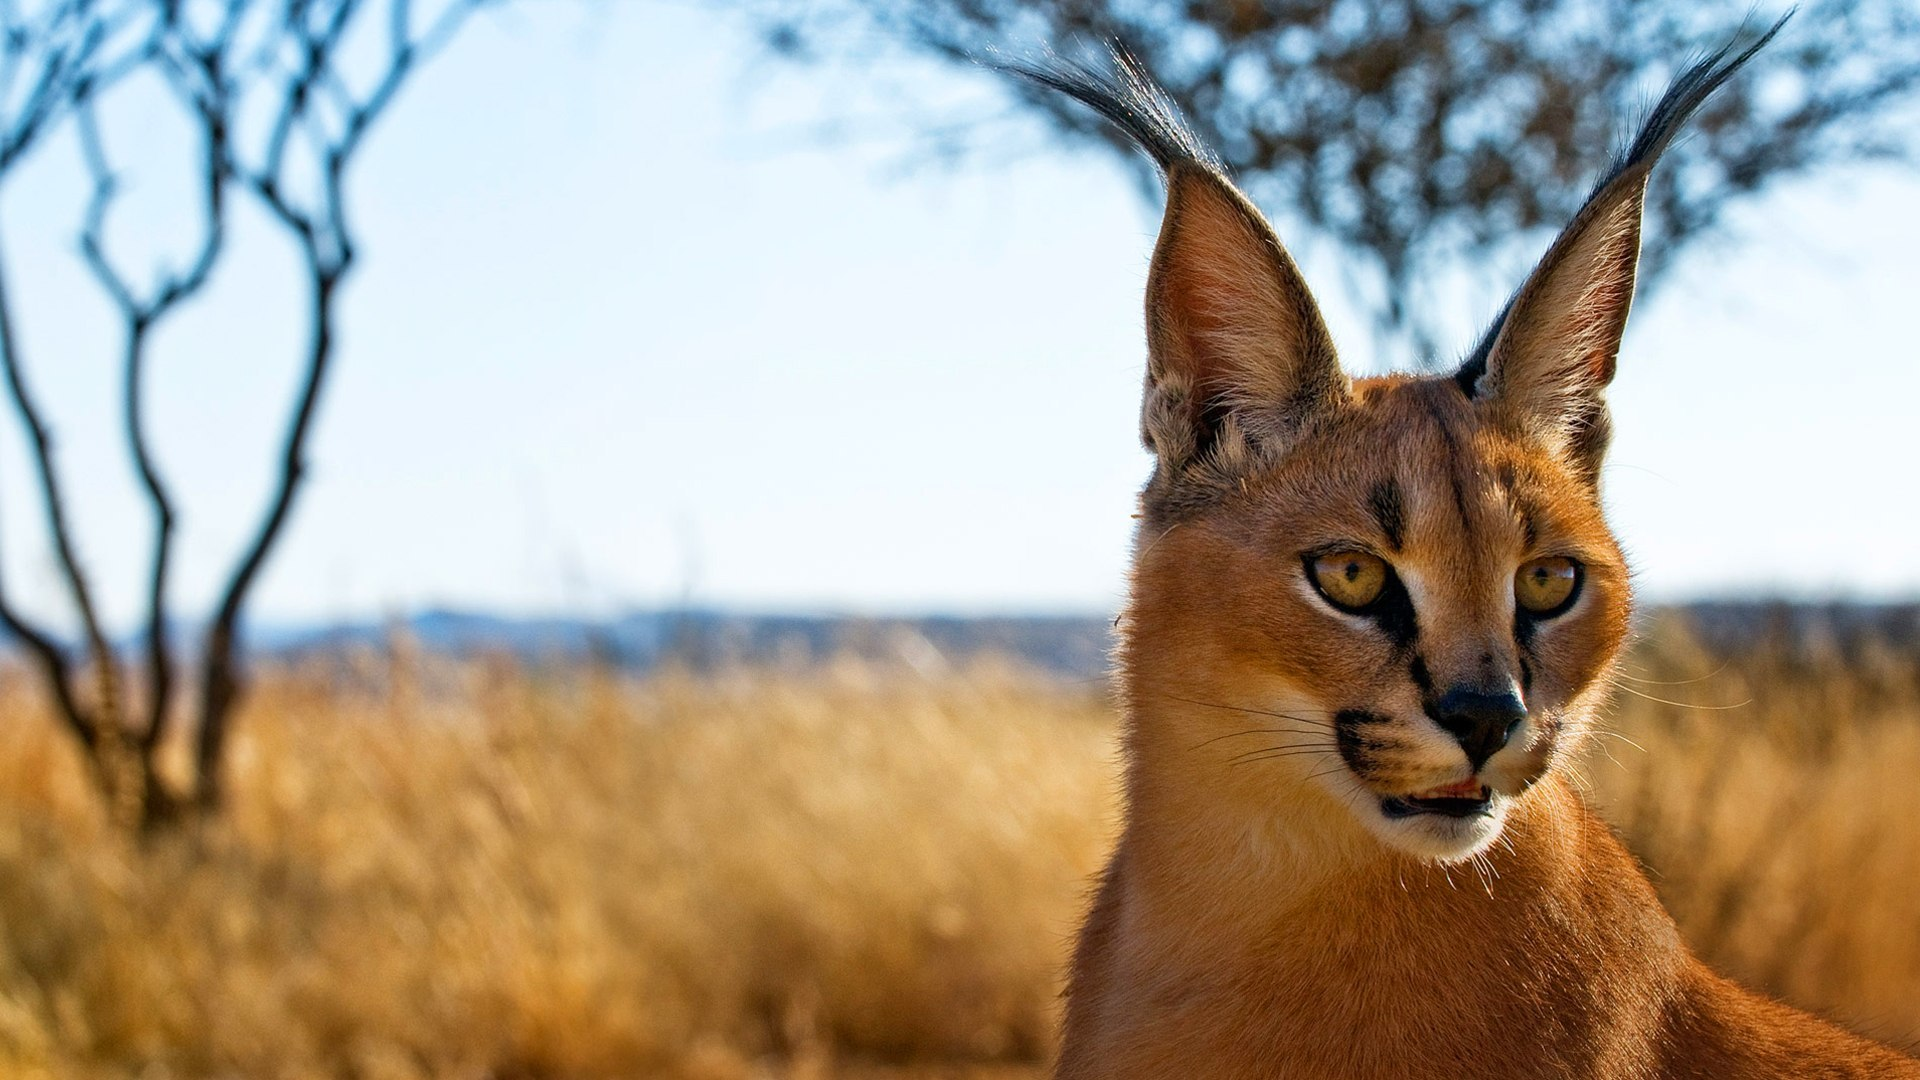 31 Caracal Hd Wallpapers Background Images Wallpaper Abyss